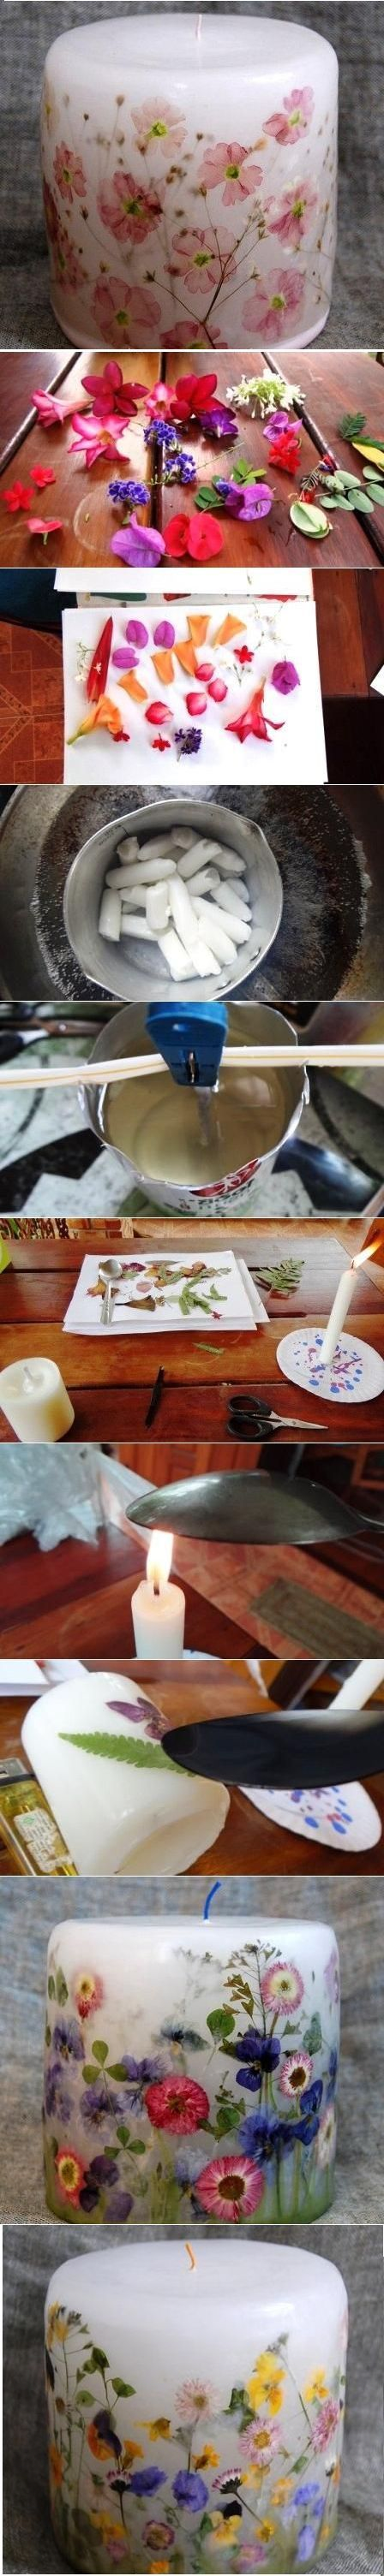 Candles Decorated With Dried Flowers                                                                                                                                                                                 Mais